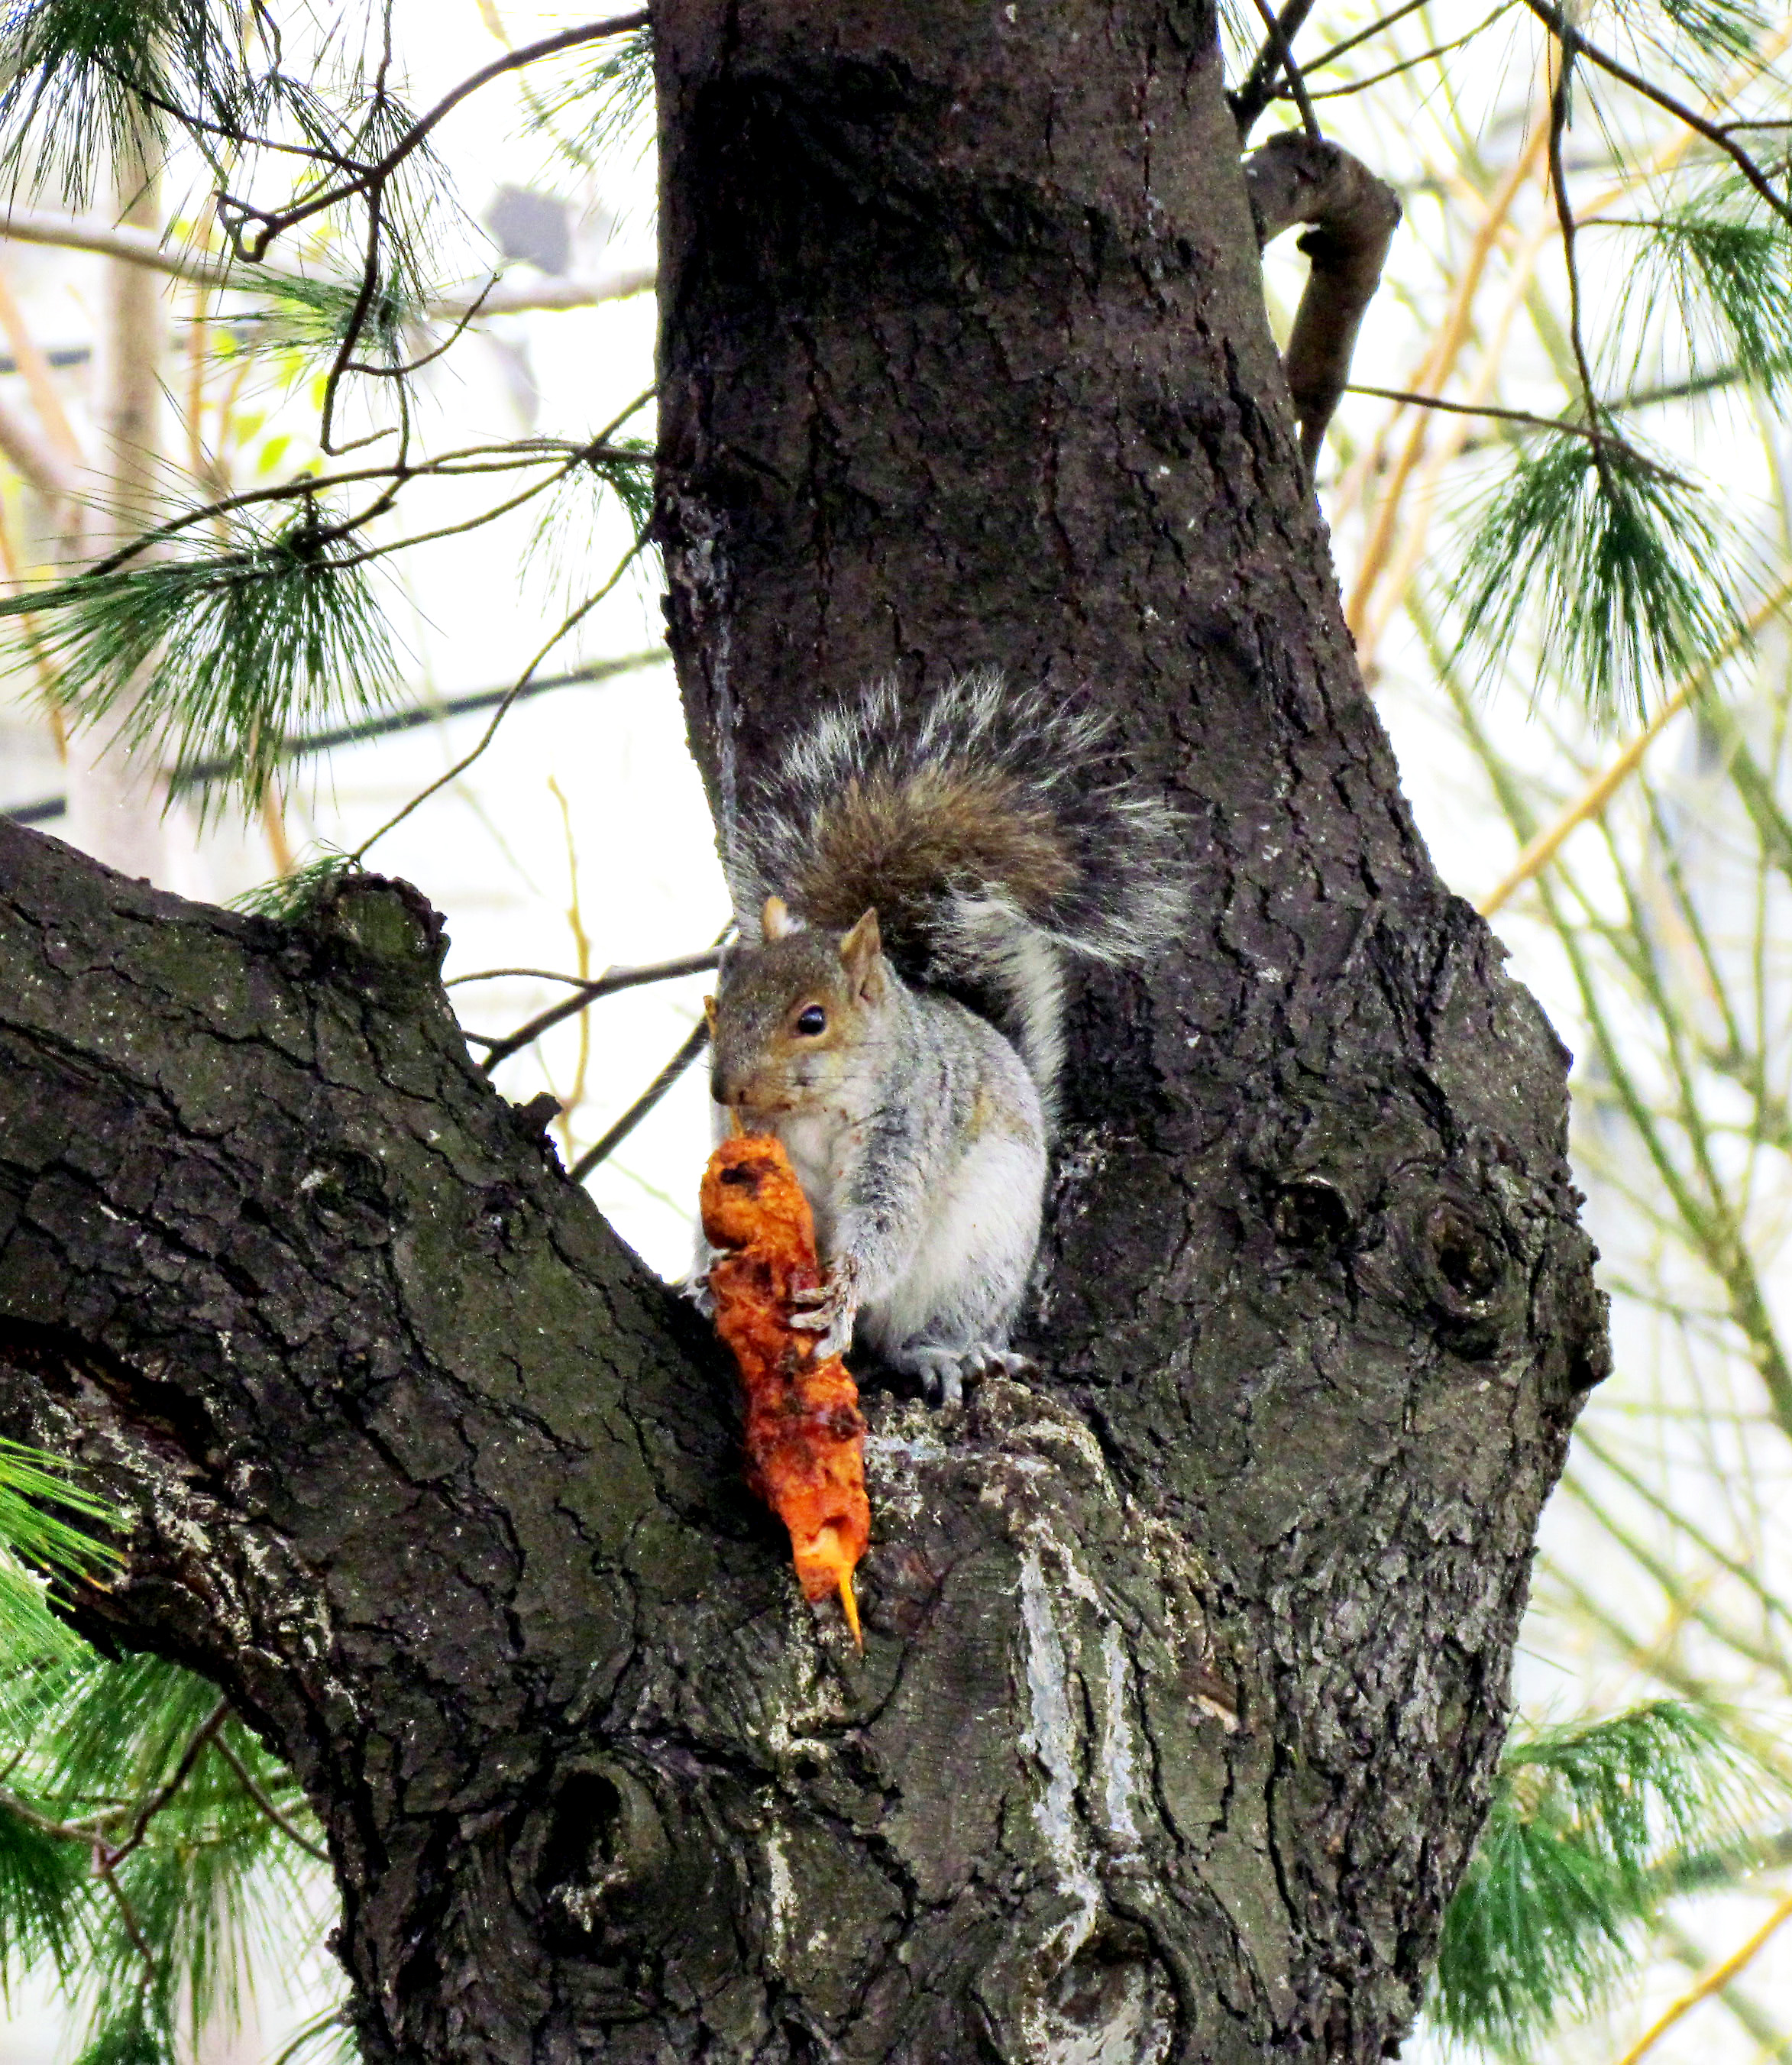 Philly Squirrel Having A Shish Kabob Lunch